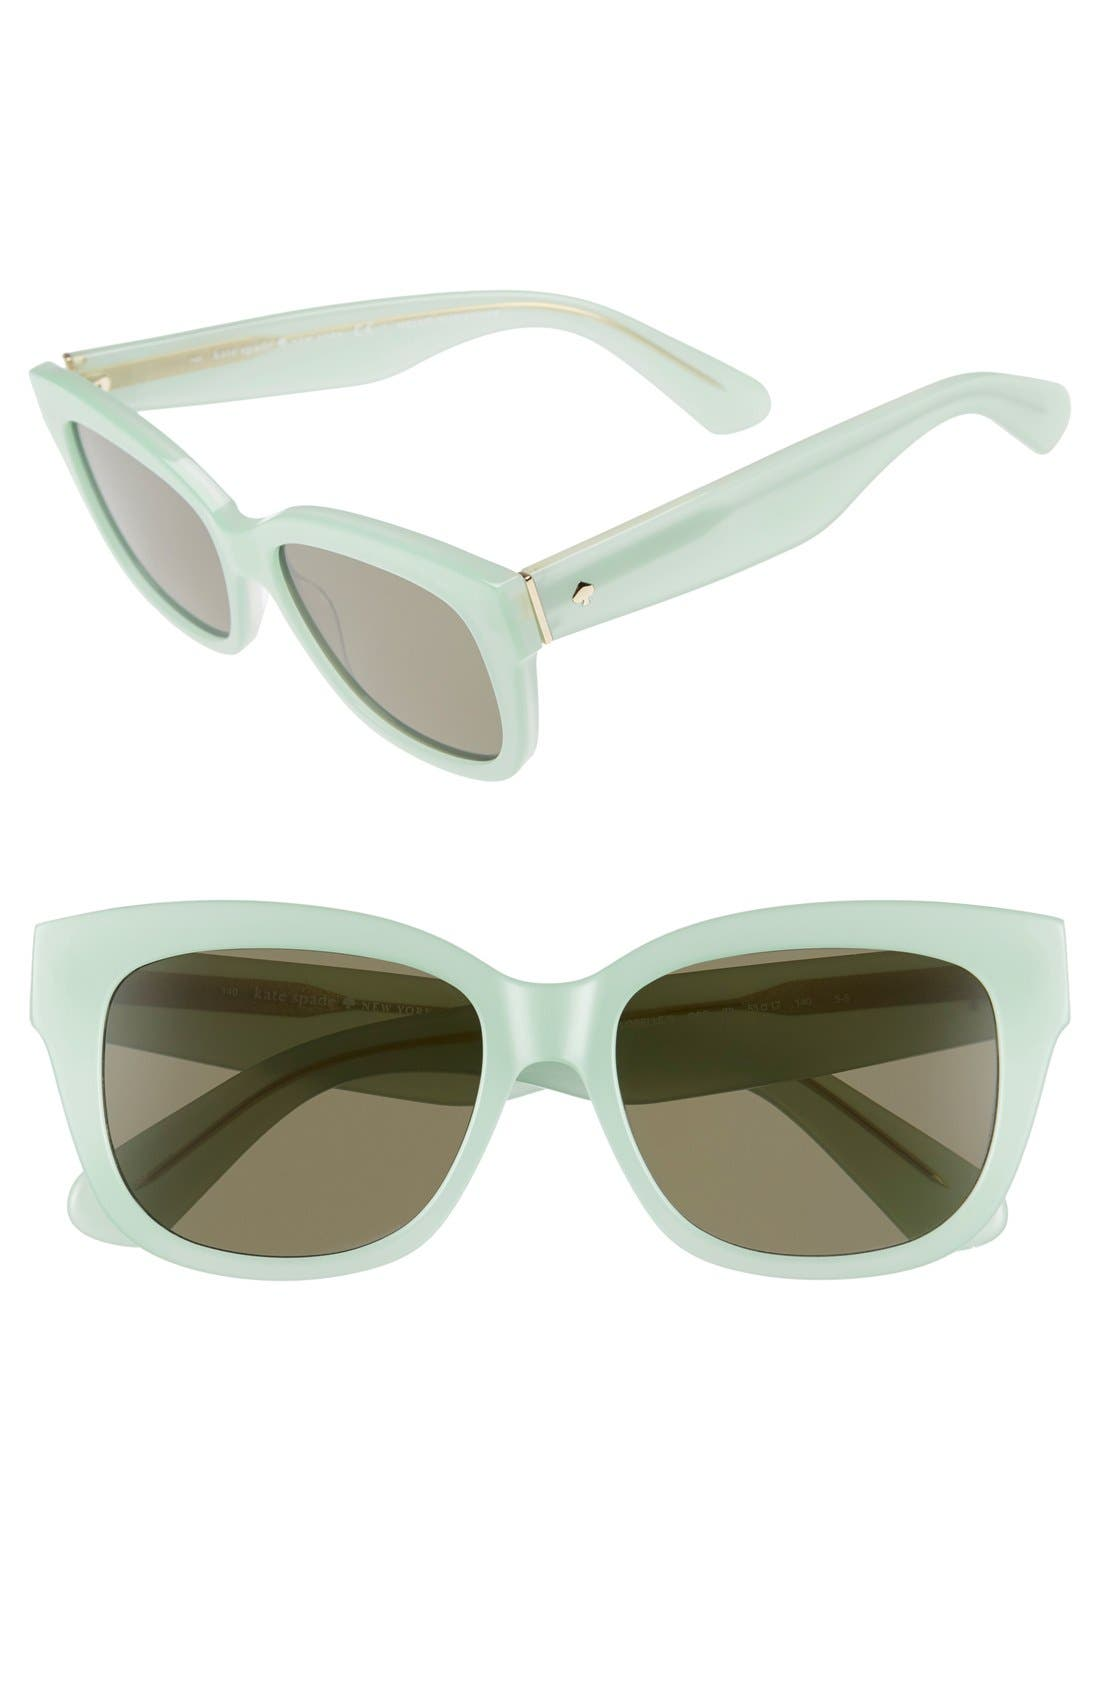 Alternate Image 1 Selected - kate spade new york 'lorelle' 53mm cat eye sunglasses